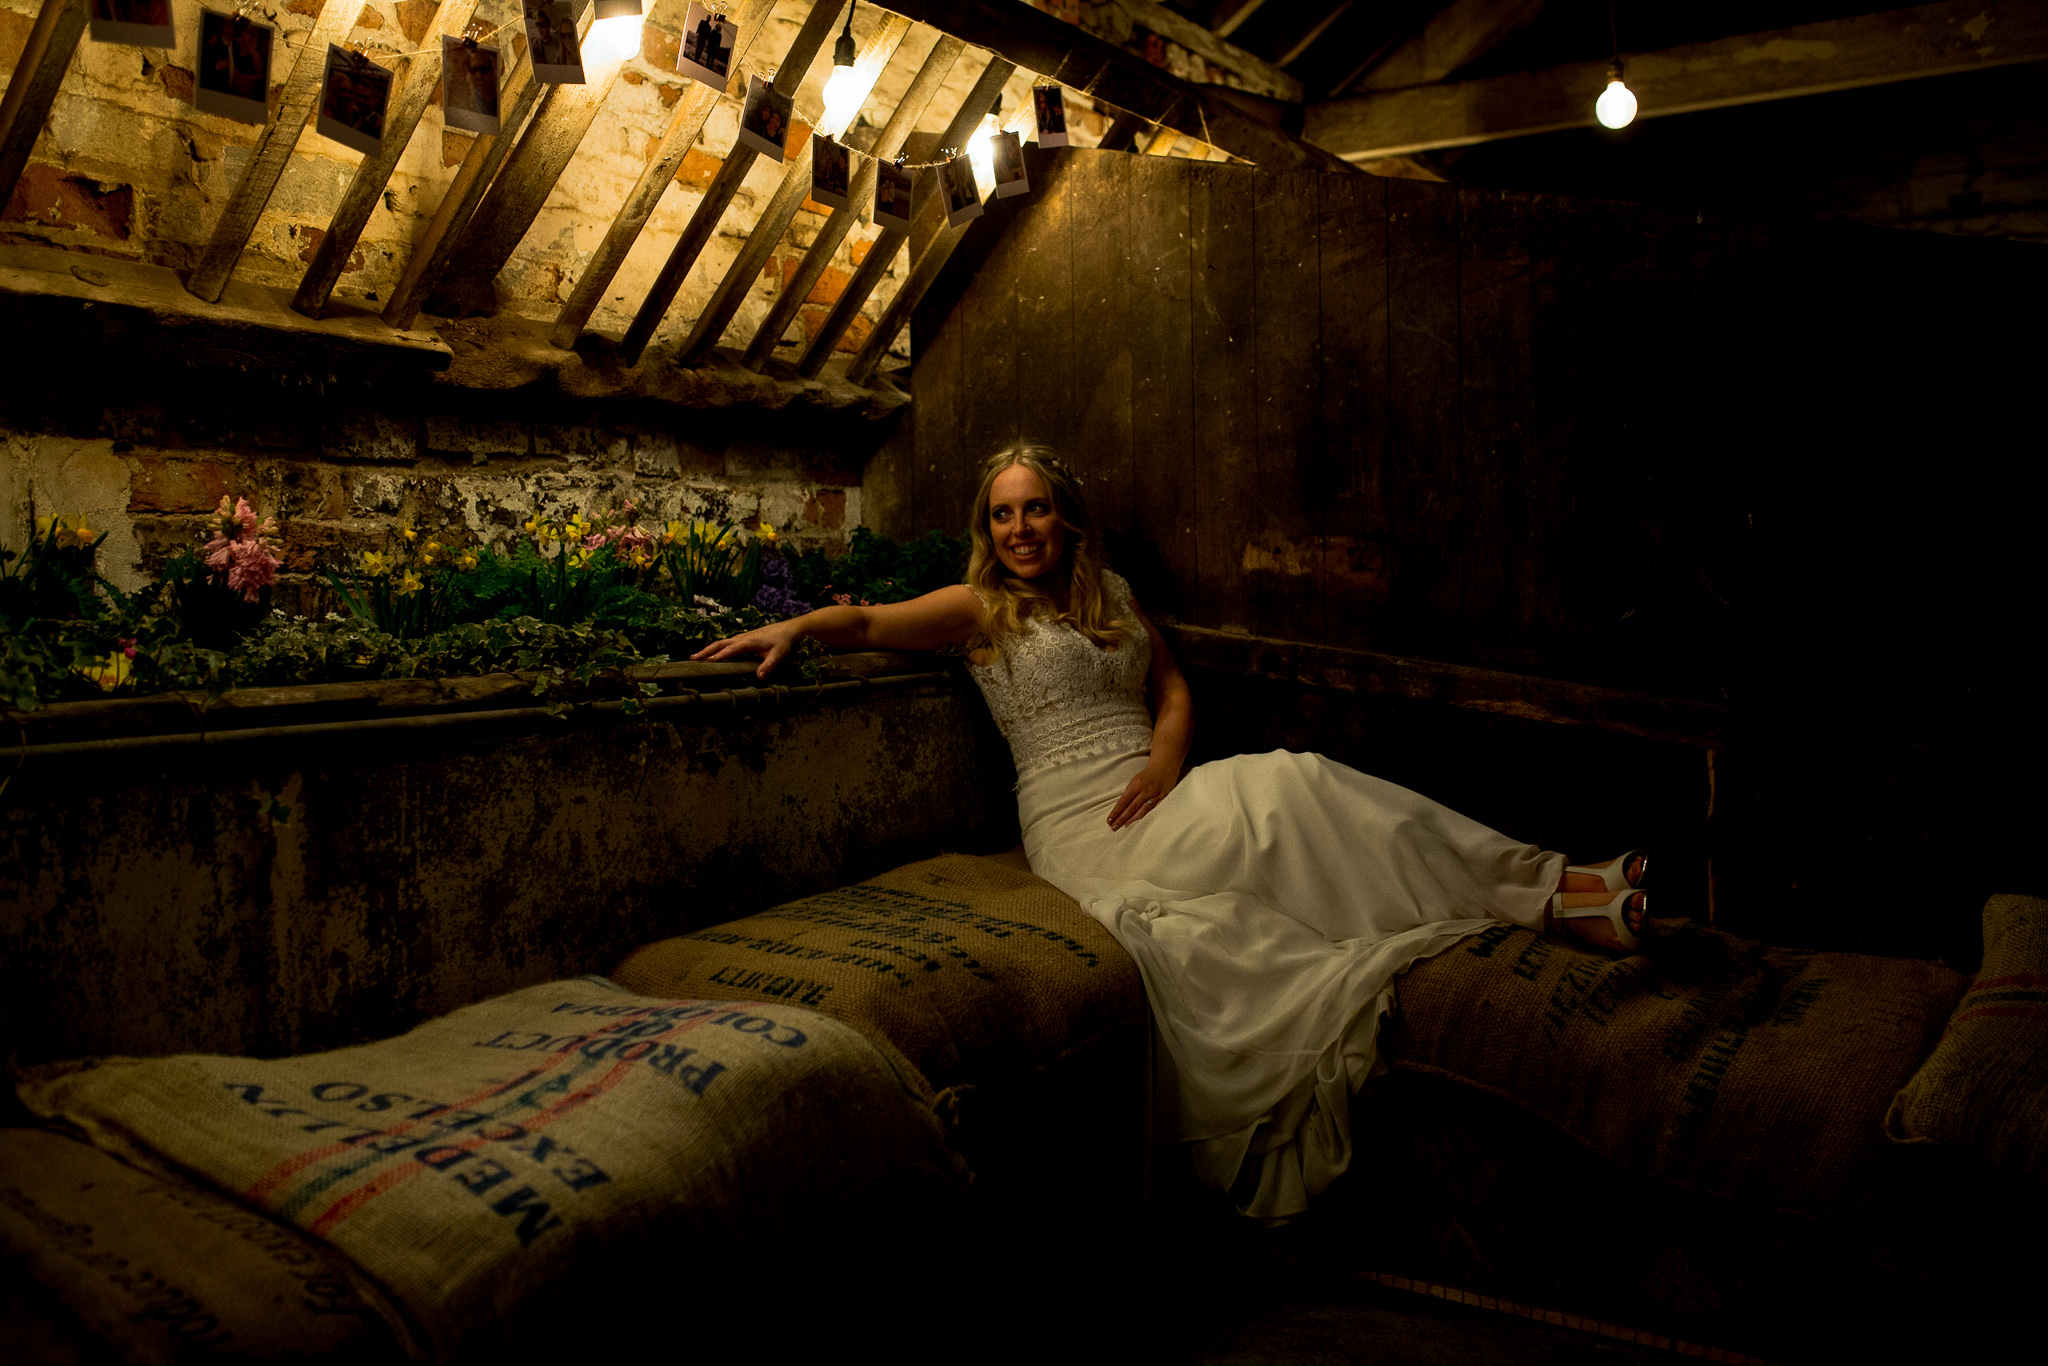 Hanging out in the Cow Stalls at The Normans. Photo by www.timdunk.com